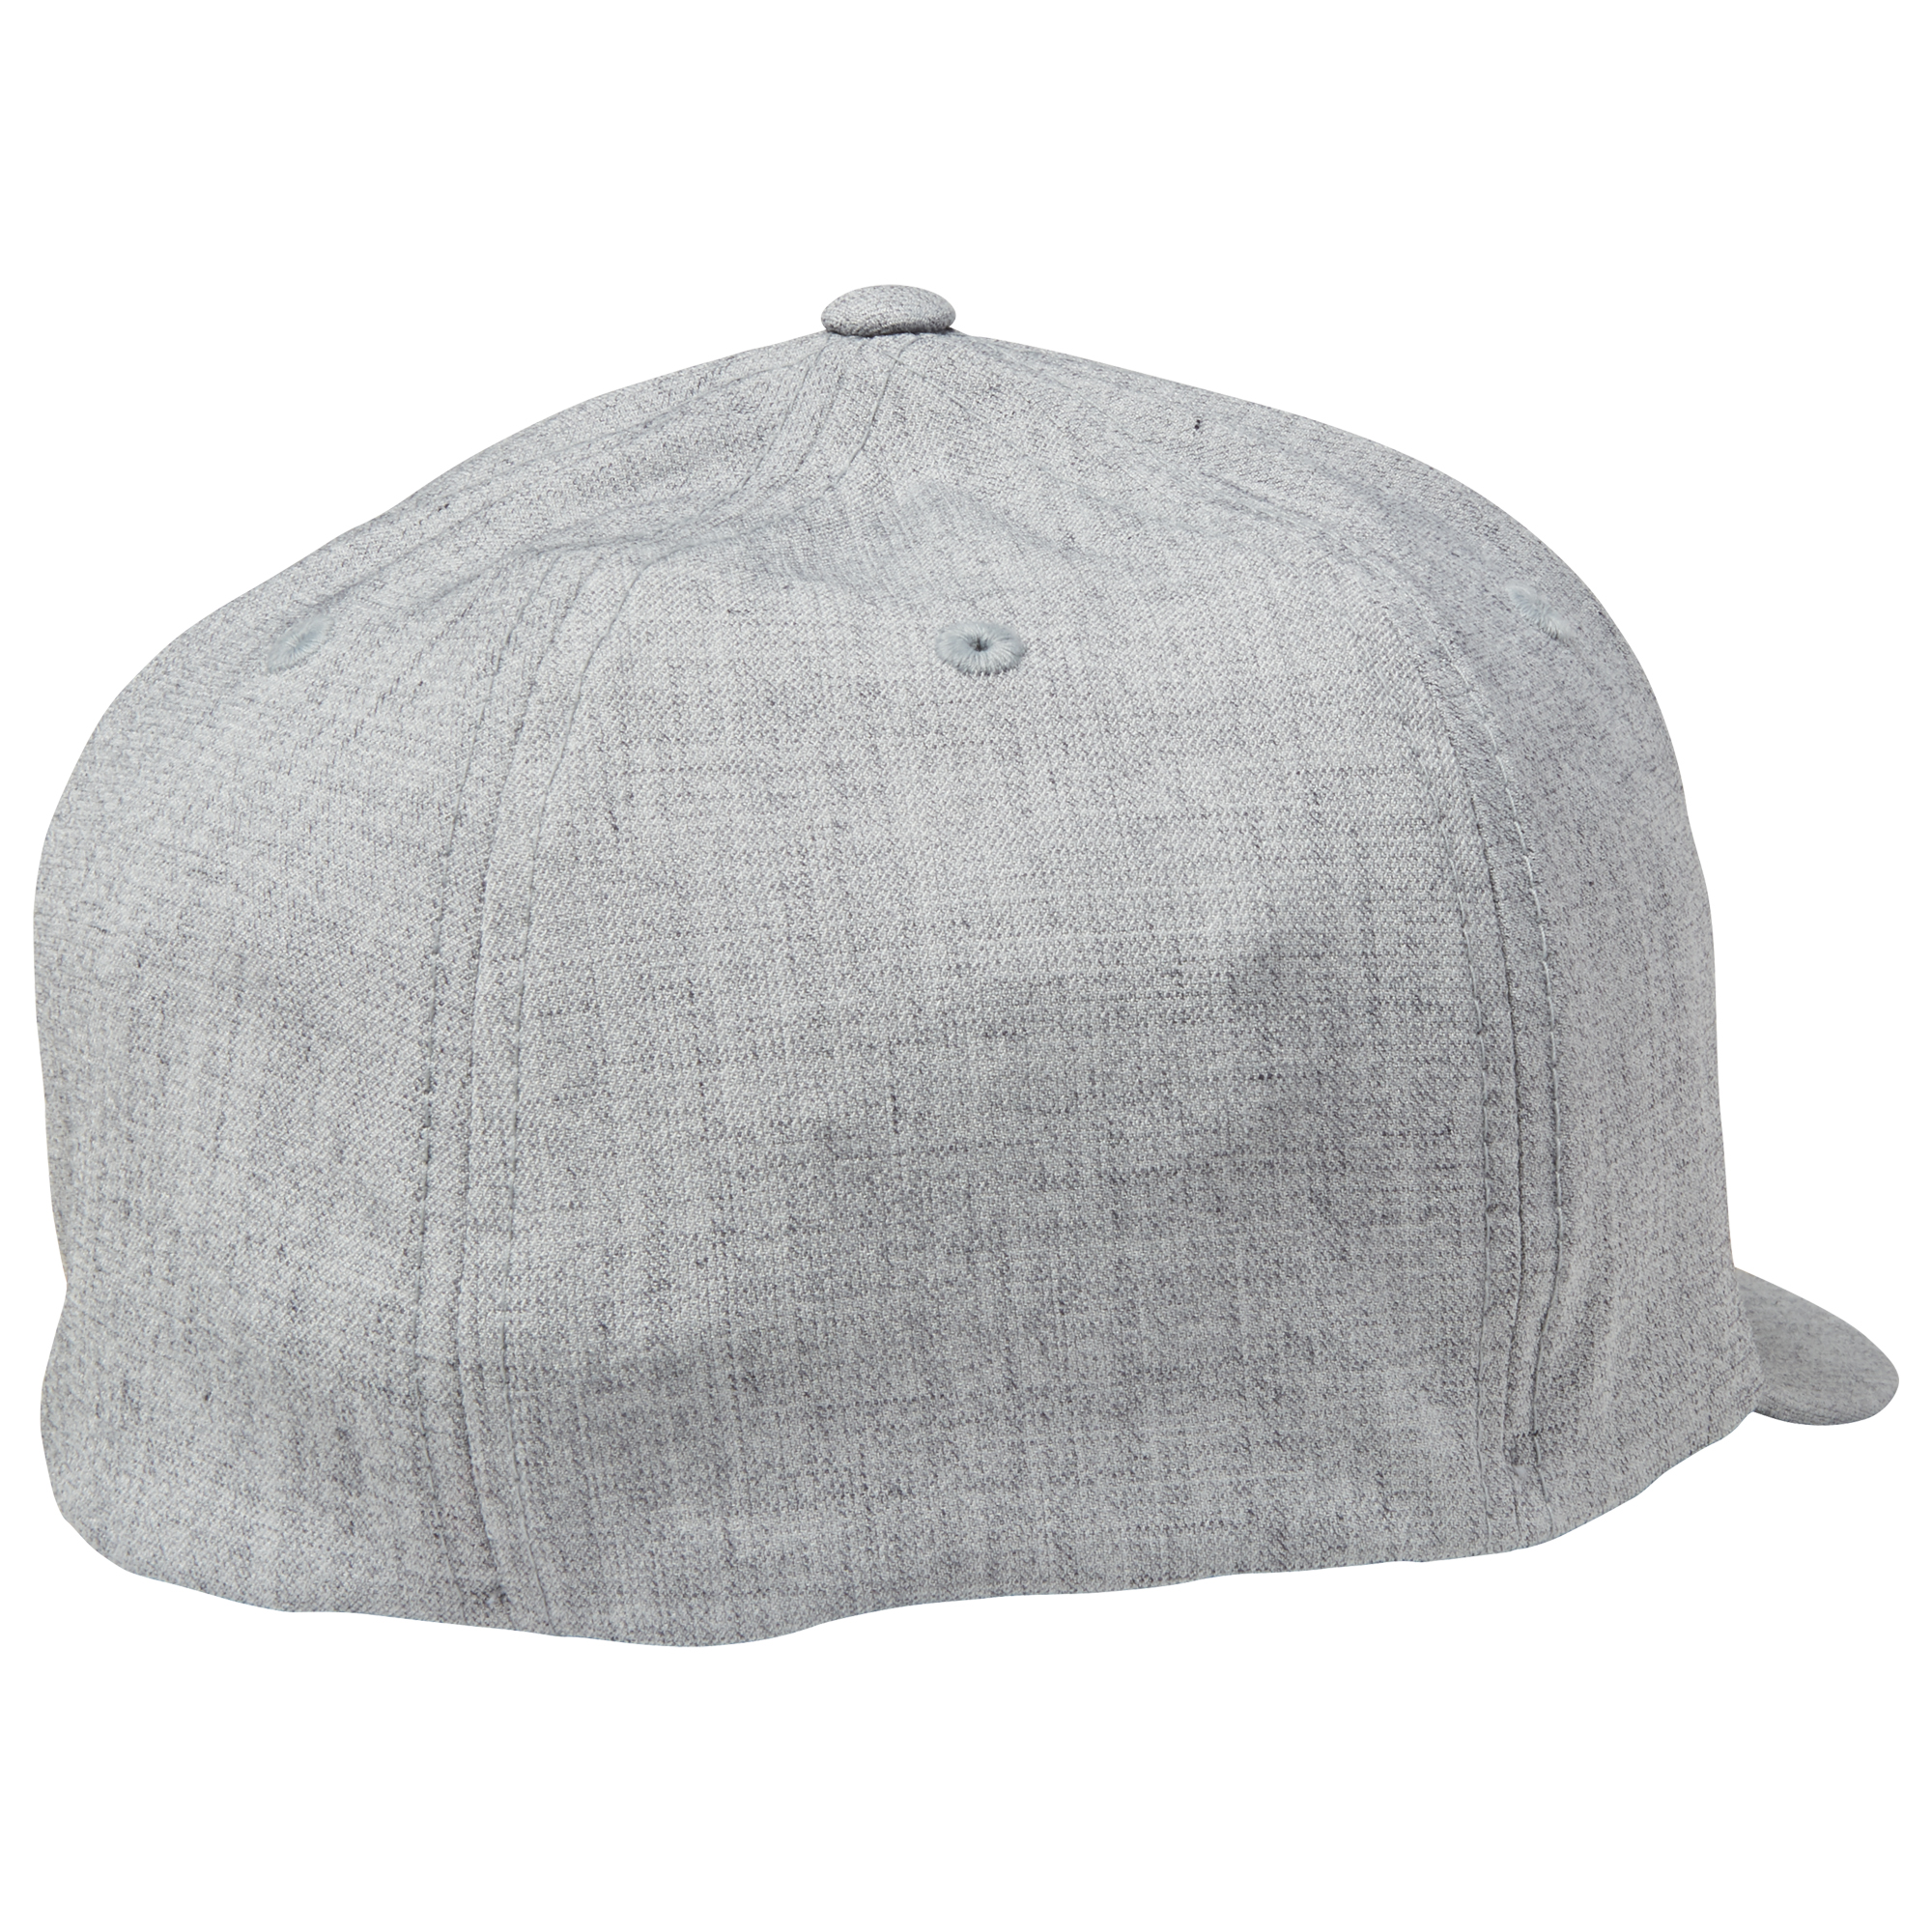 Fox-Racing-Mens-Clouded-Flexfit-Hat-Cap-Stretch-to-fit-Design-Curved-Bill thumbnail 17